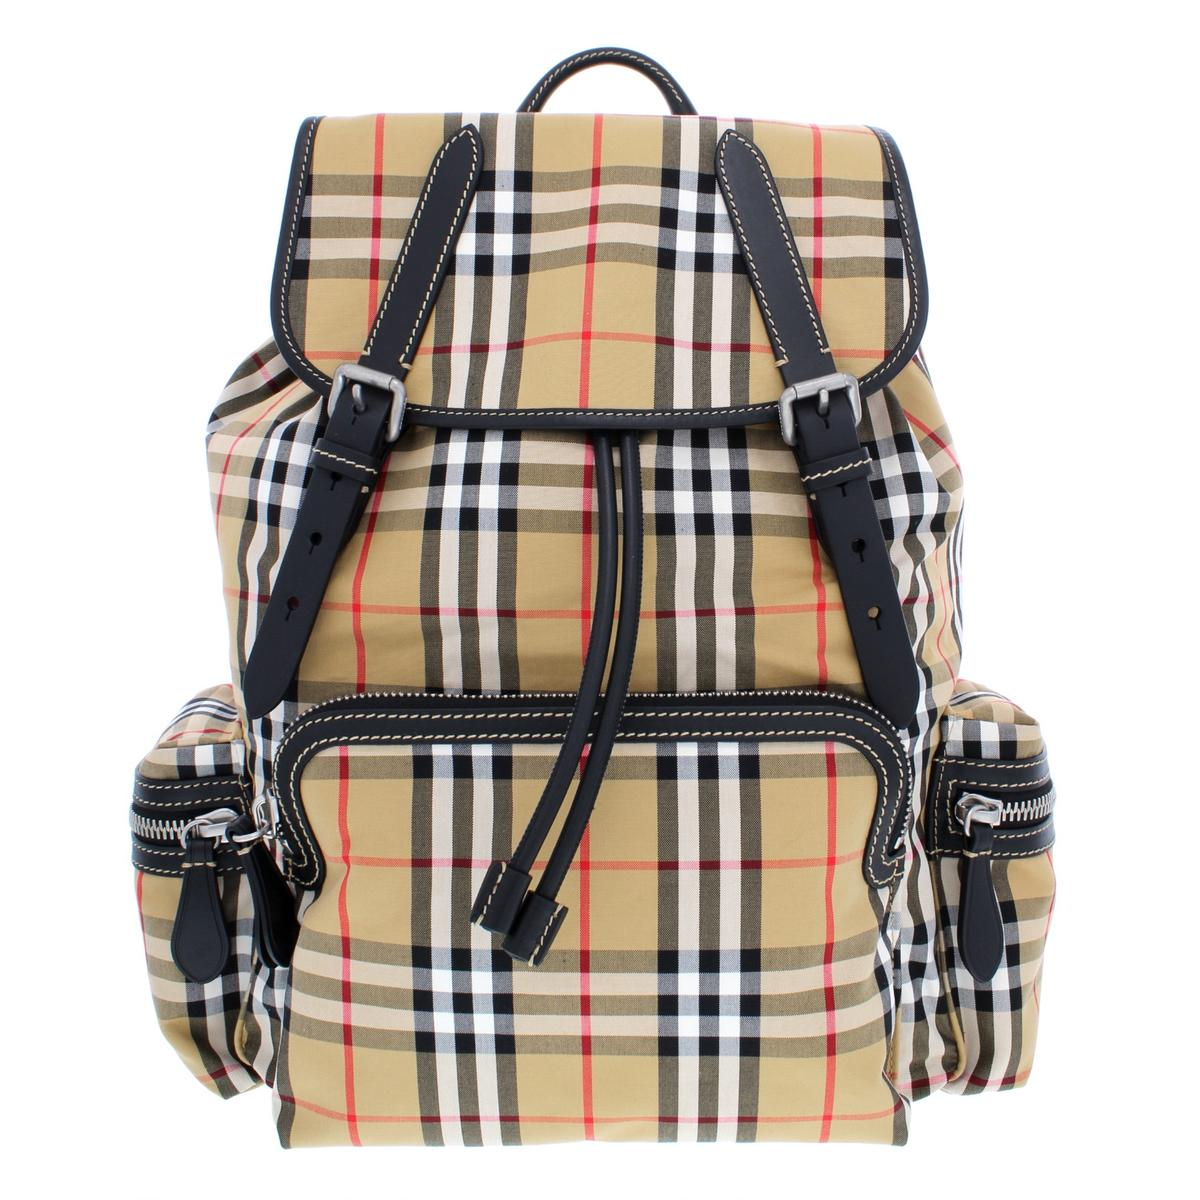 46f7e157b066 Details about Burberry The Medium Tan Vintage Check Rucksack Backpack O S  BHFO 8983